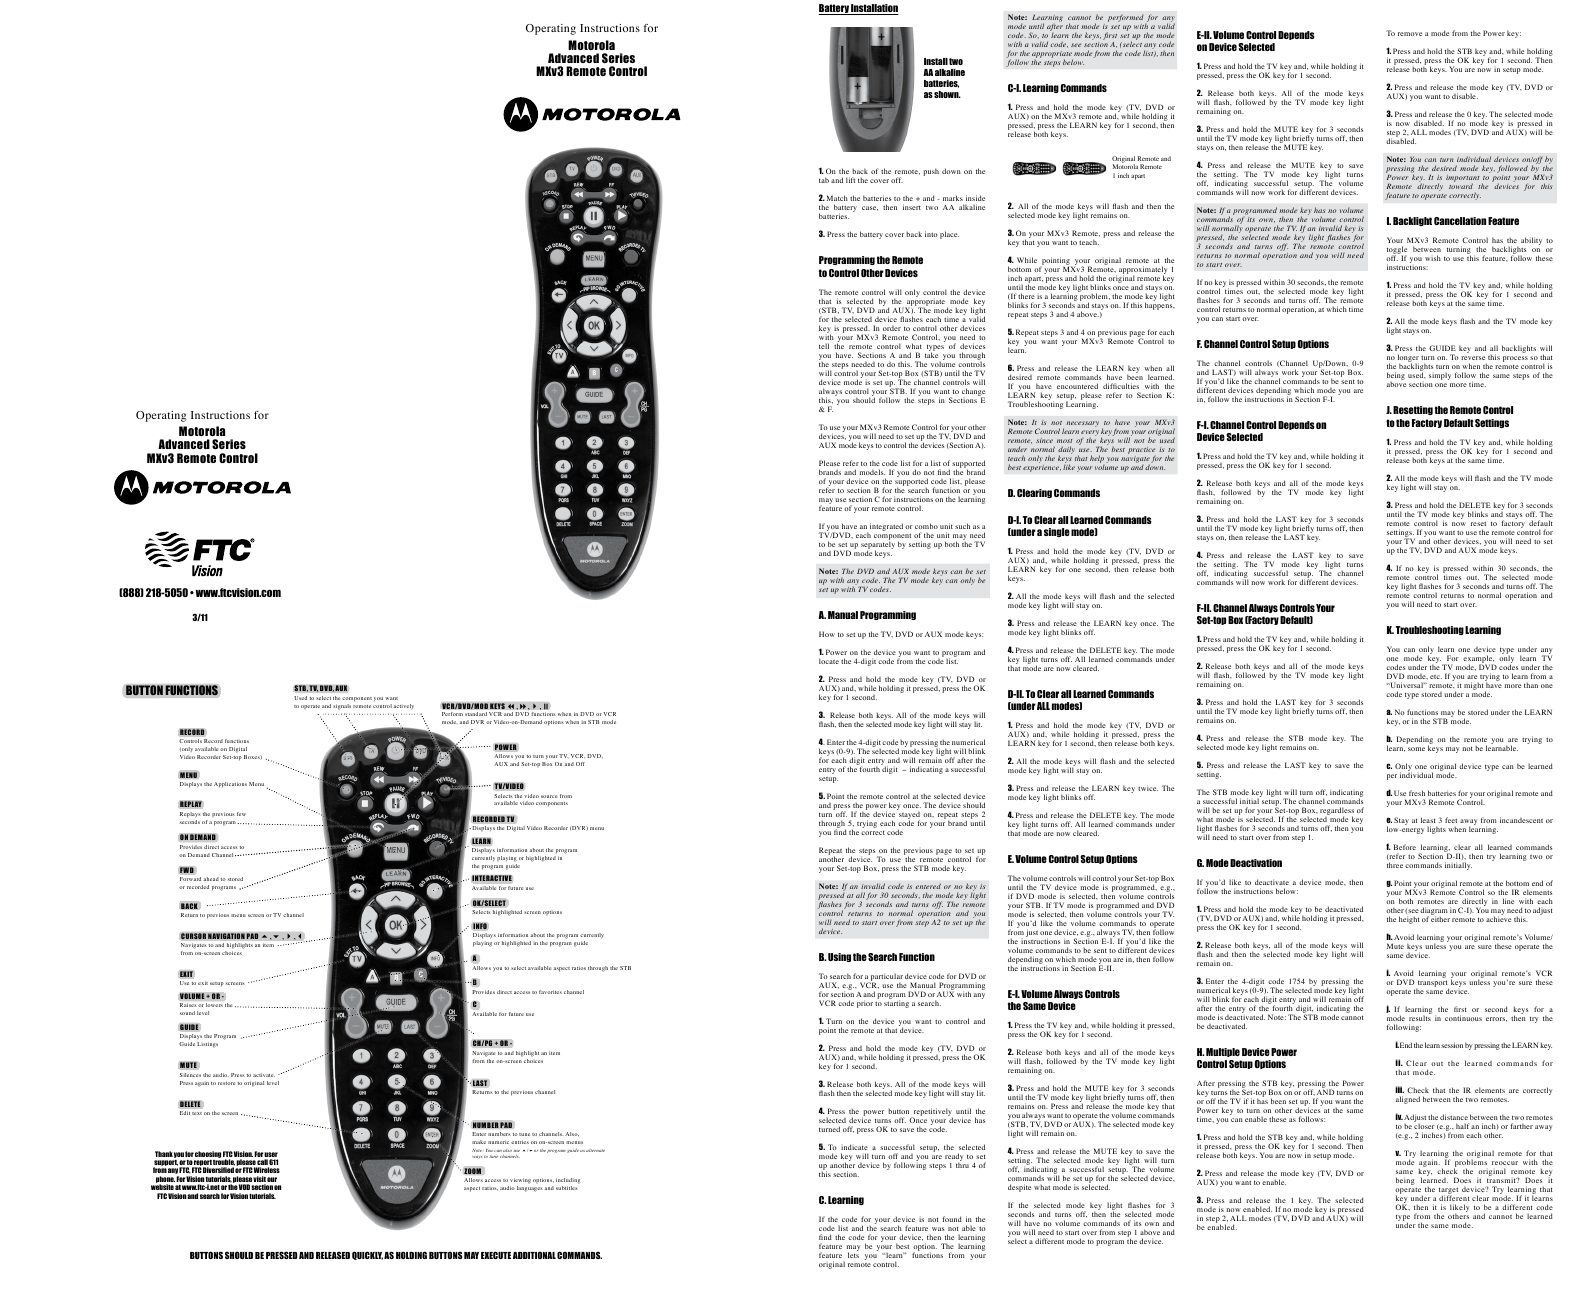 Search motorola motorola universal remote User Manuals